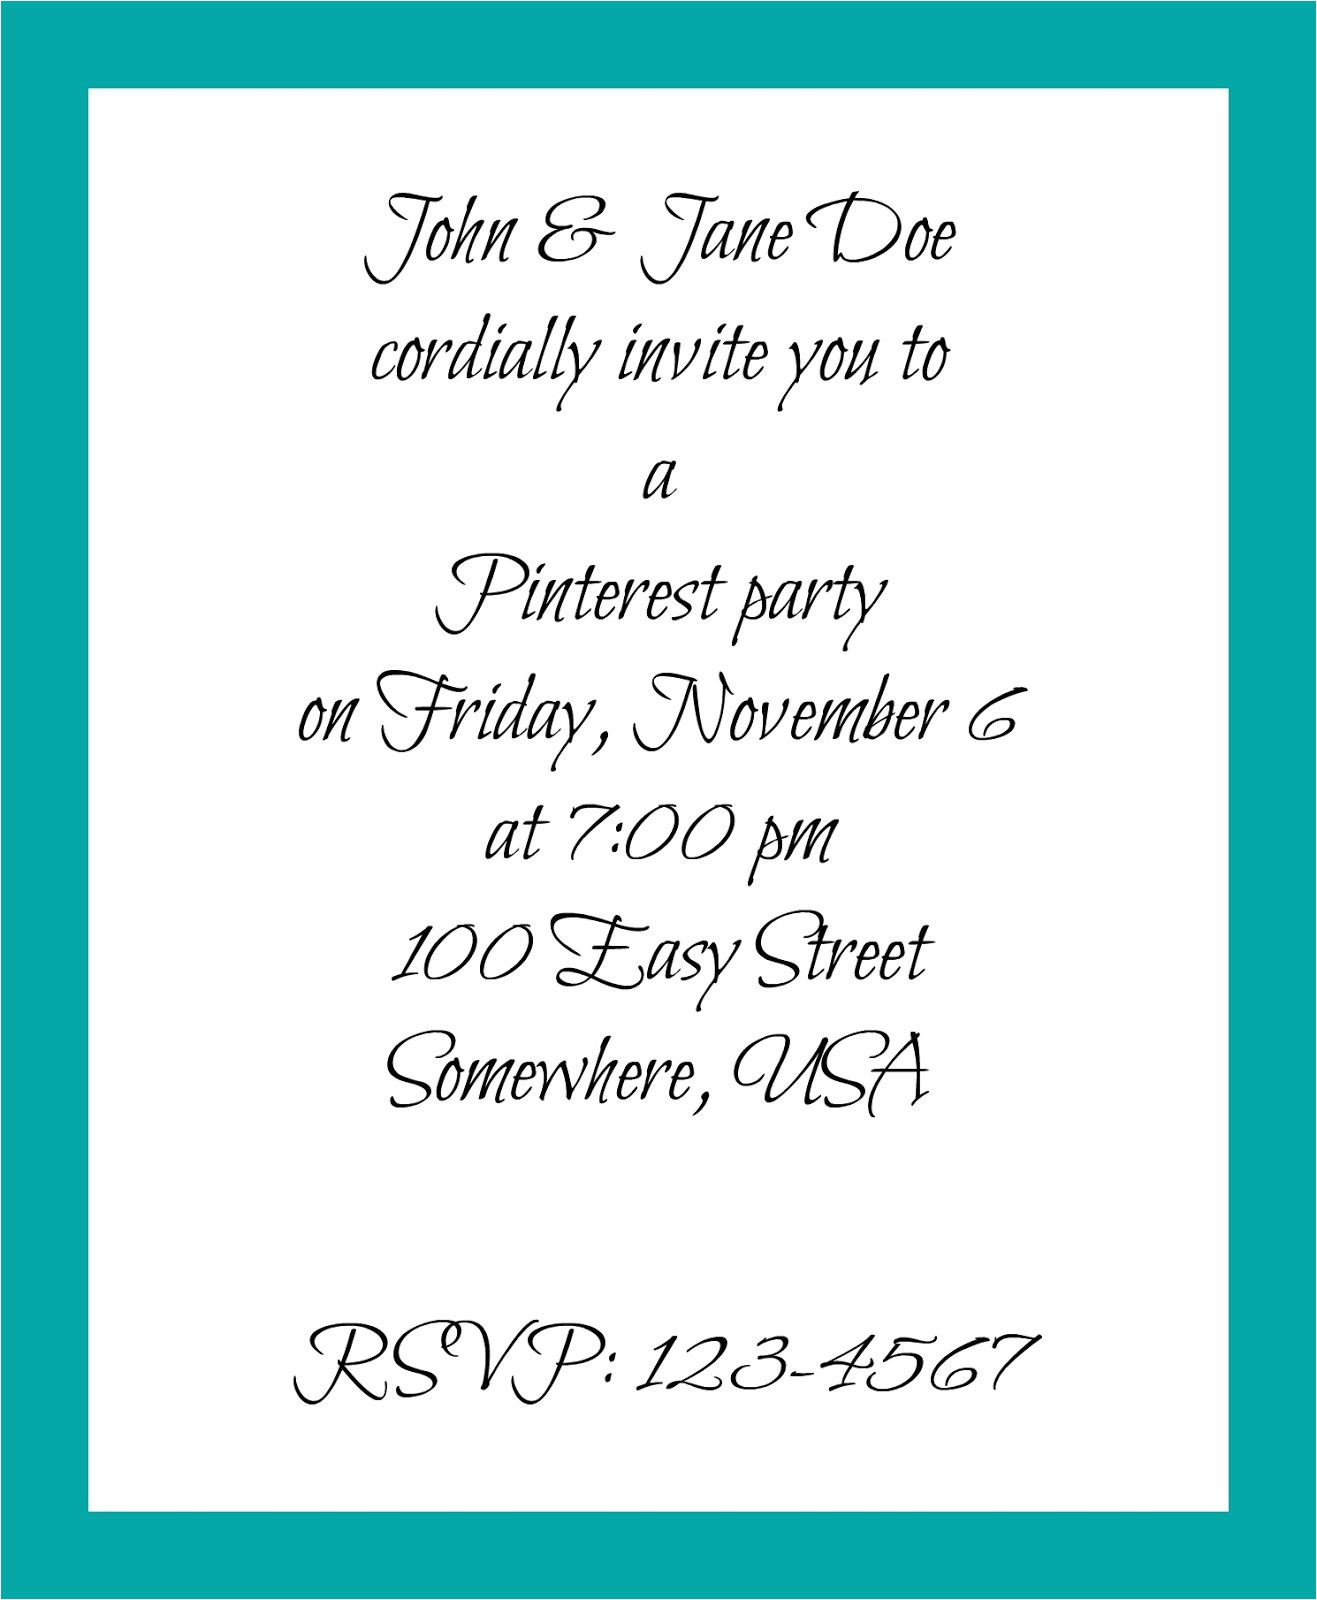 hostessing how to write invitation free